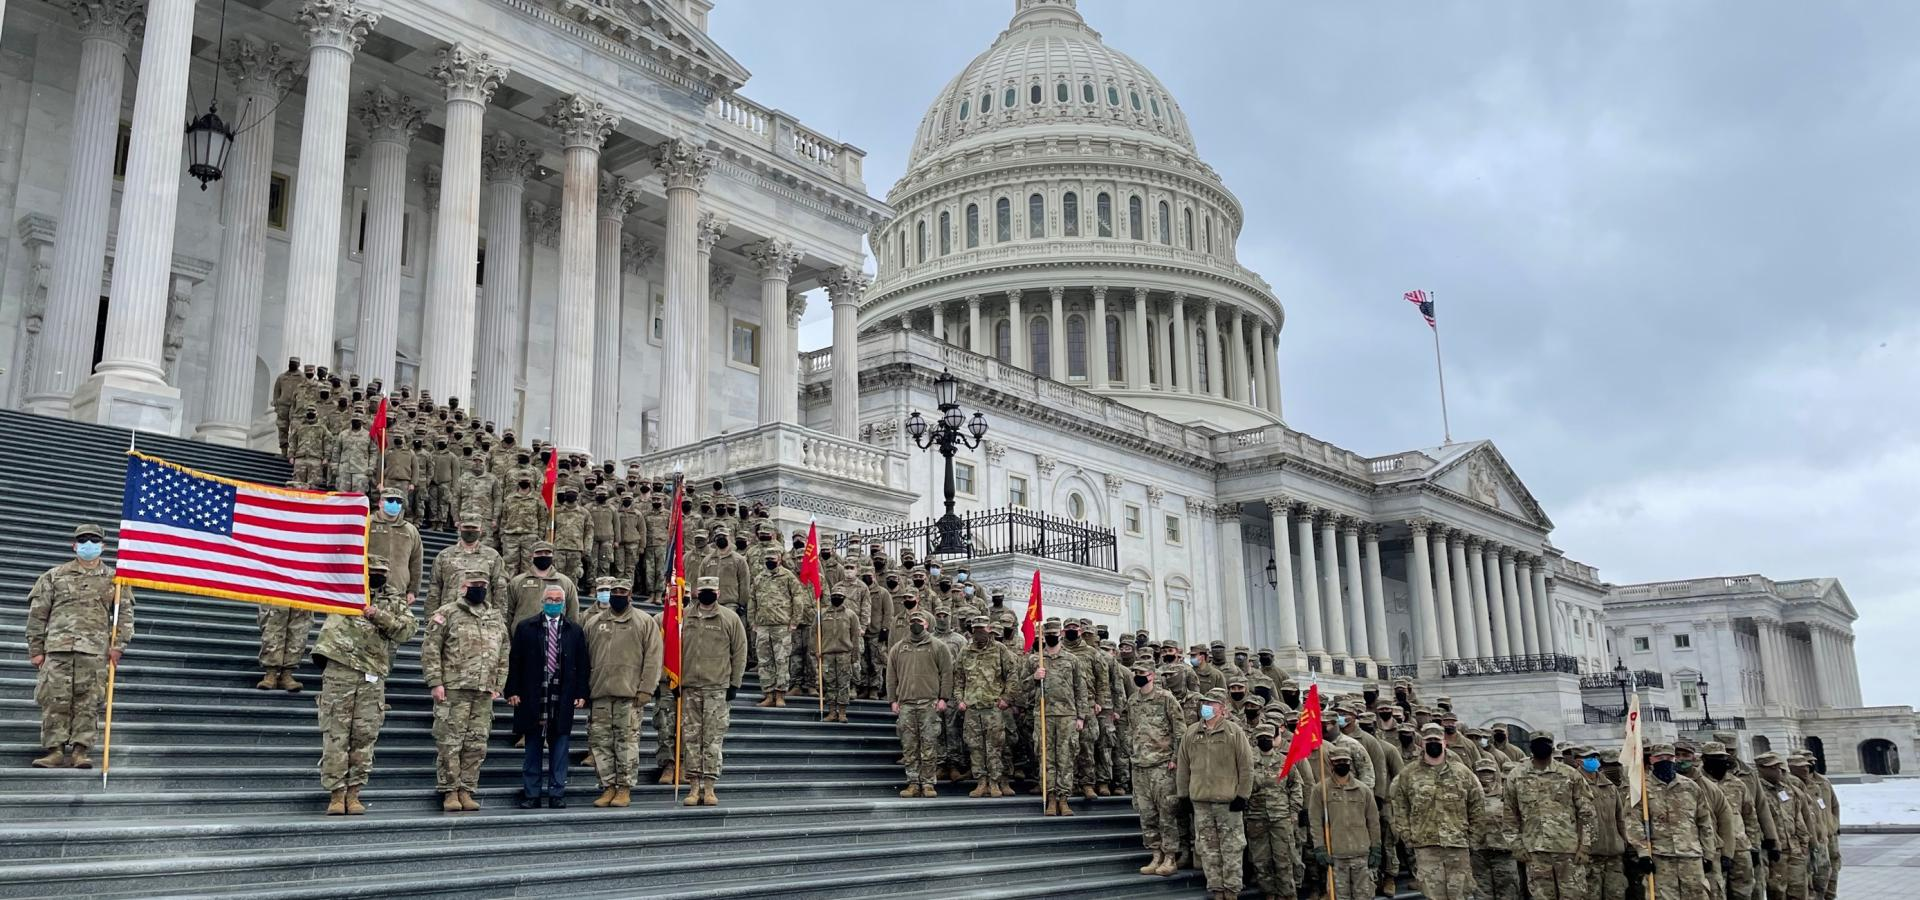 Rep. Scott with the Virginia National Guard at the US Capitol